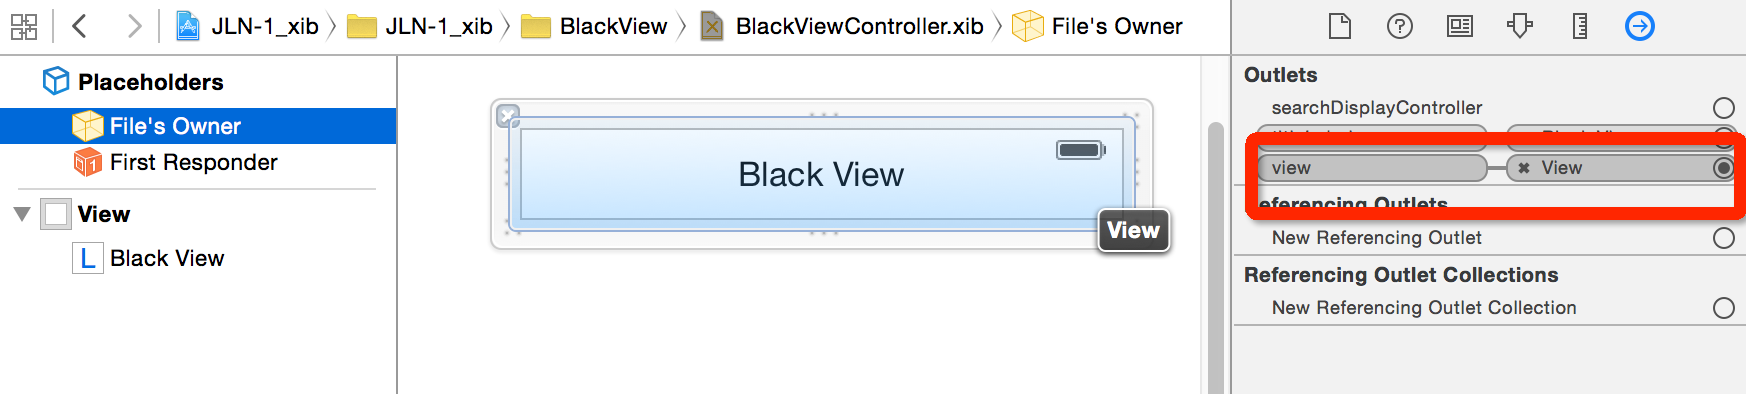 blackview_xib_connections.png